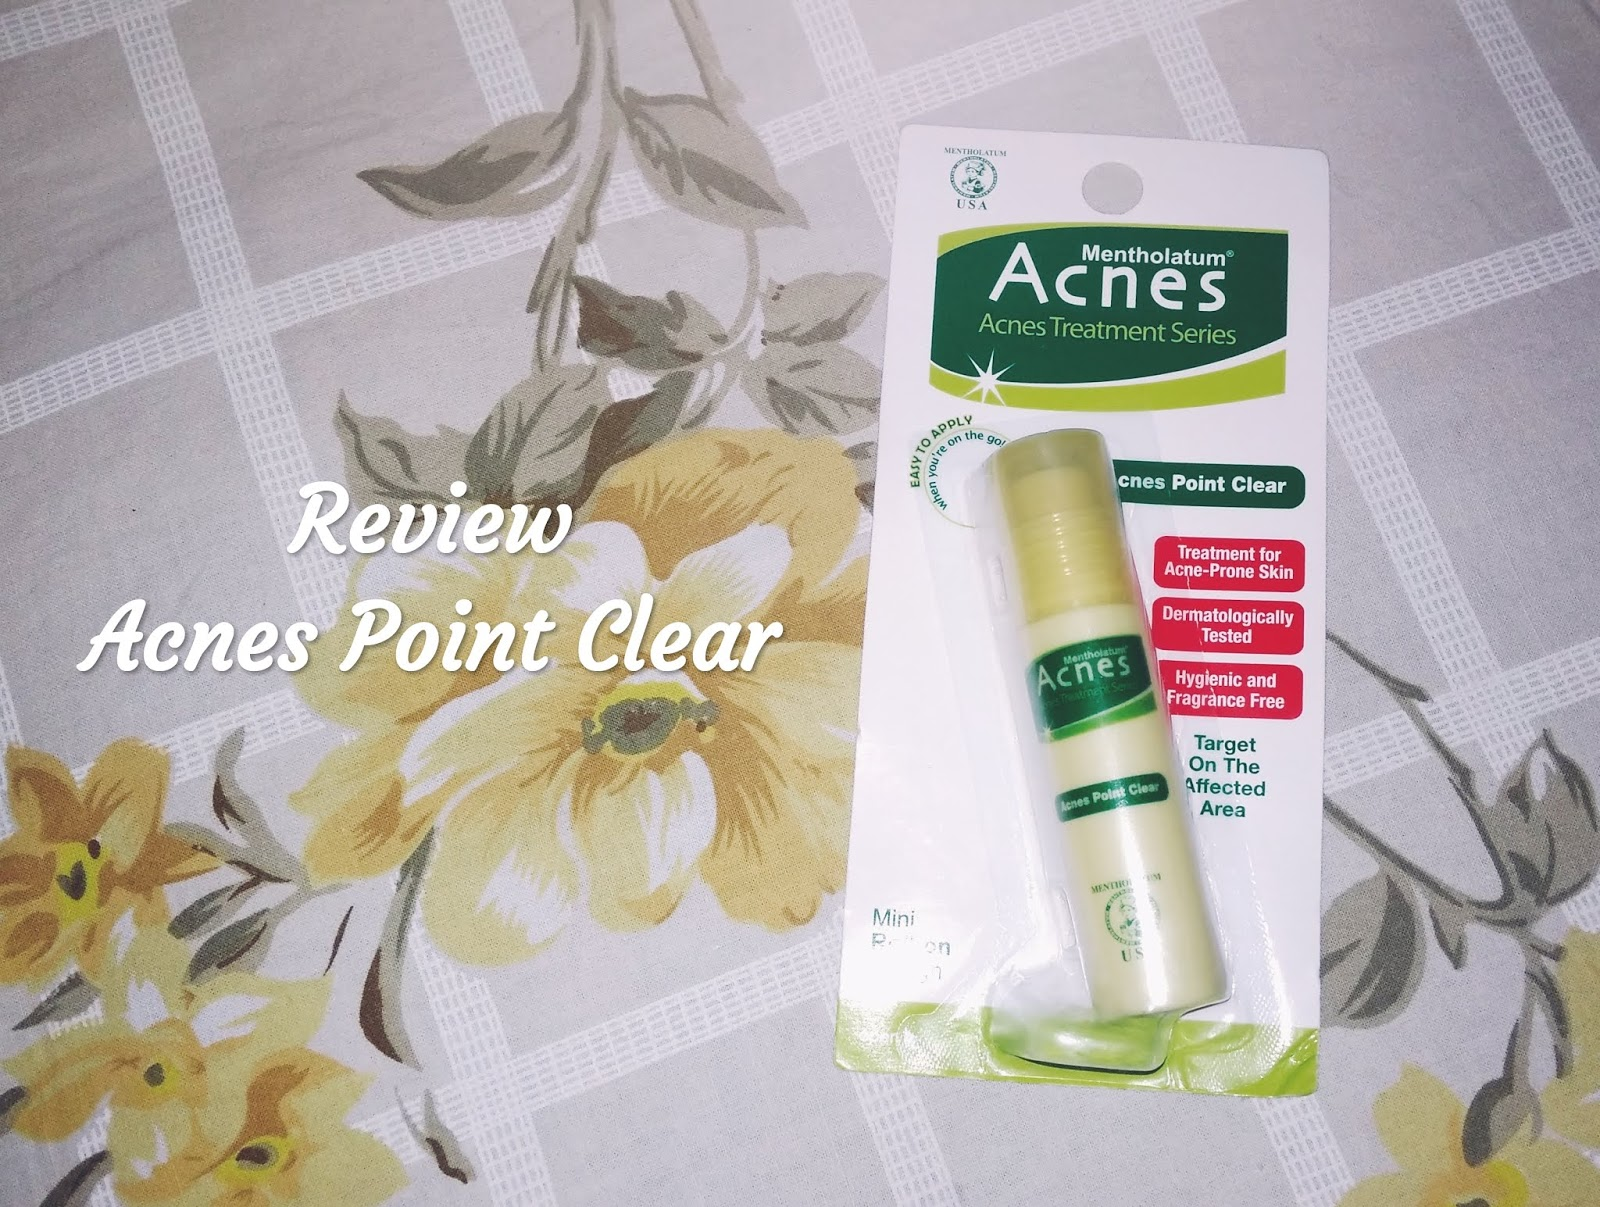 Acnes Point Clear 9ml Update Harga Terkini Dan Terlengkap Indonesia Roll On Penghilang Jerawat Cream Obat Review Treatment Series